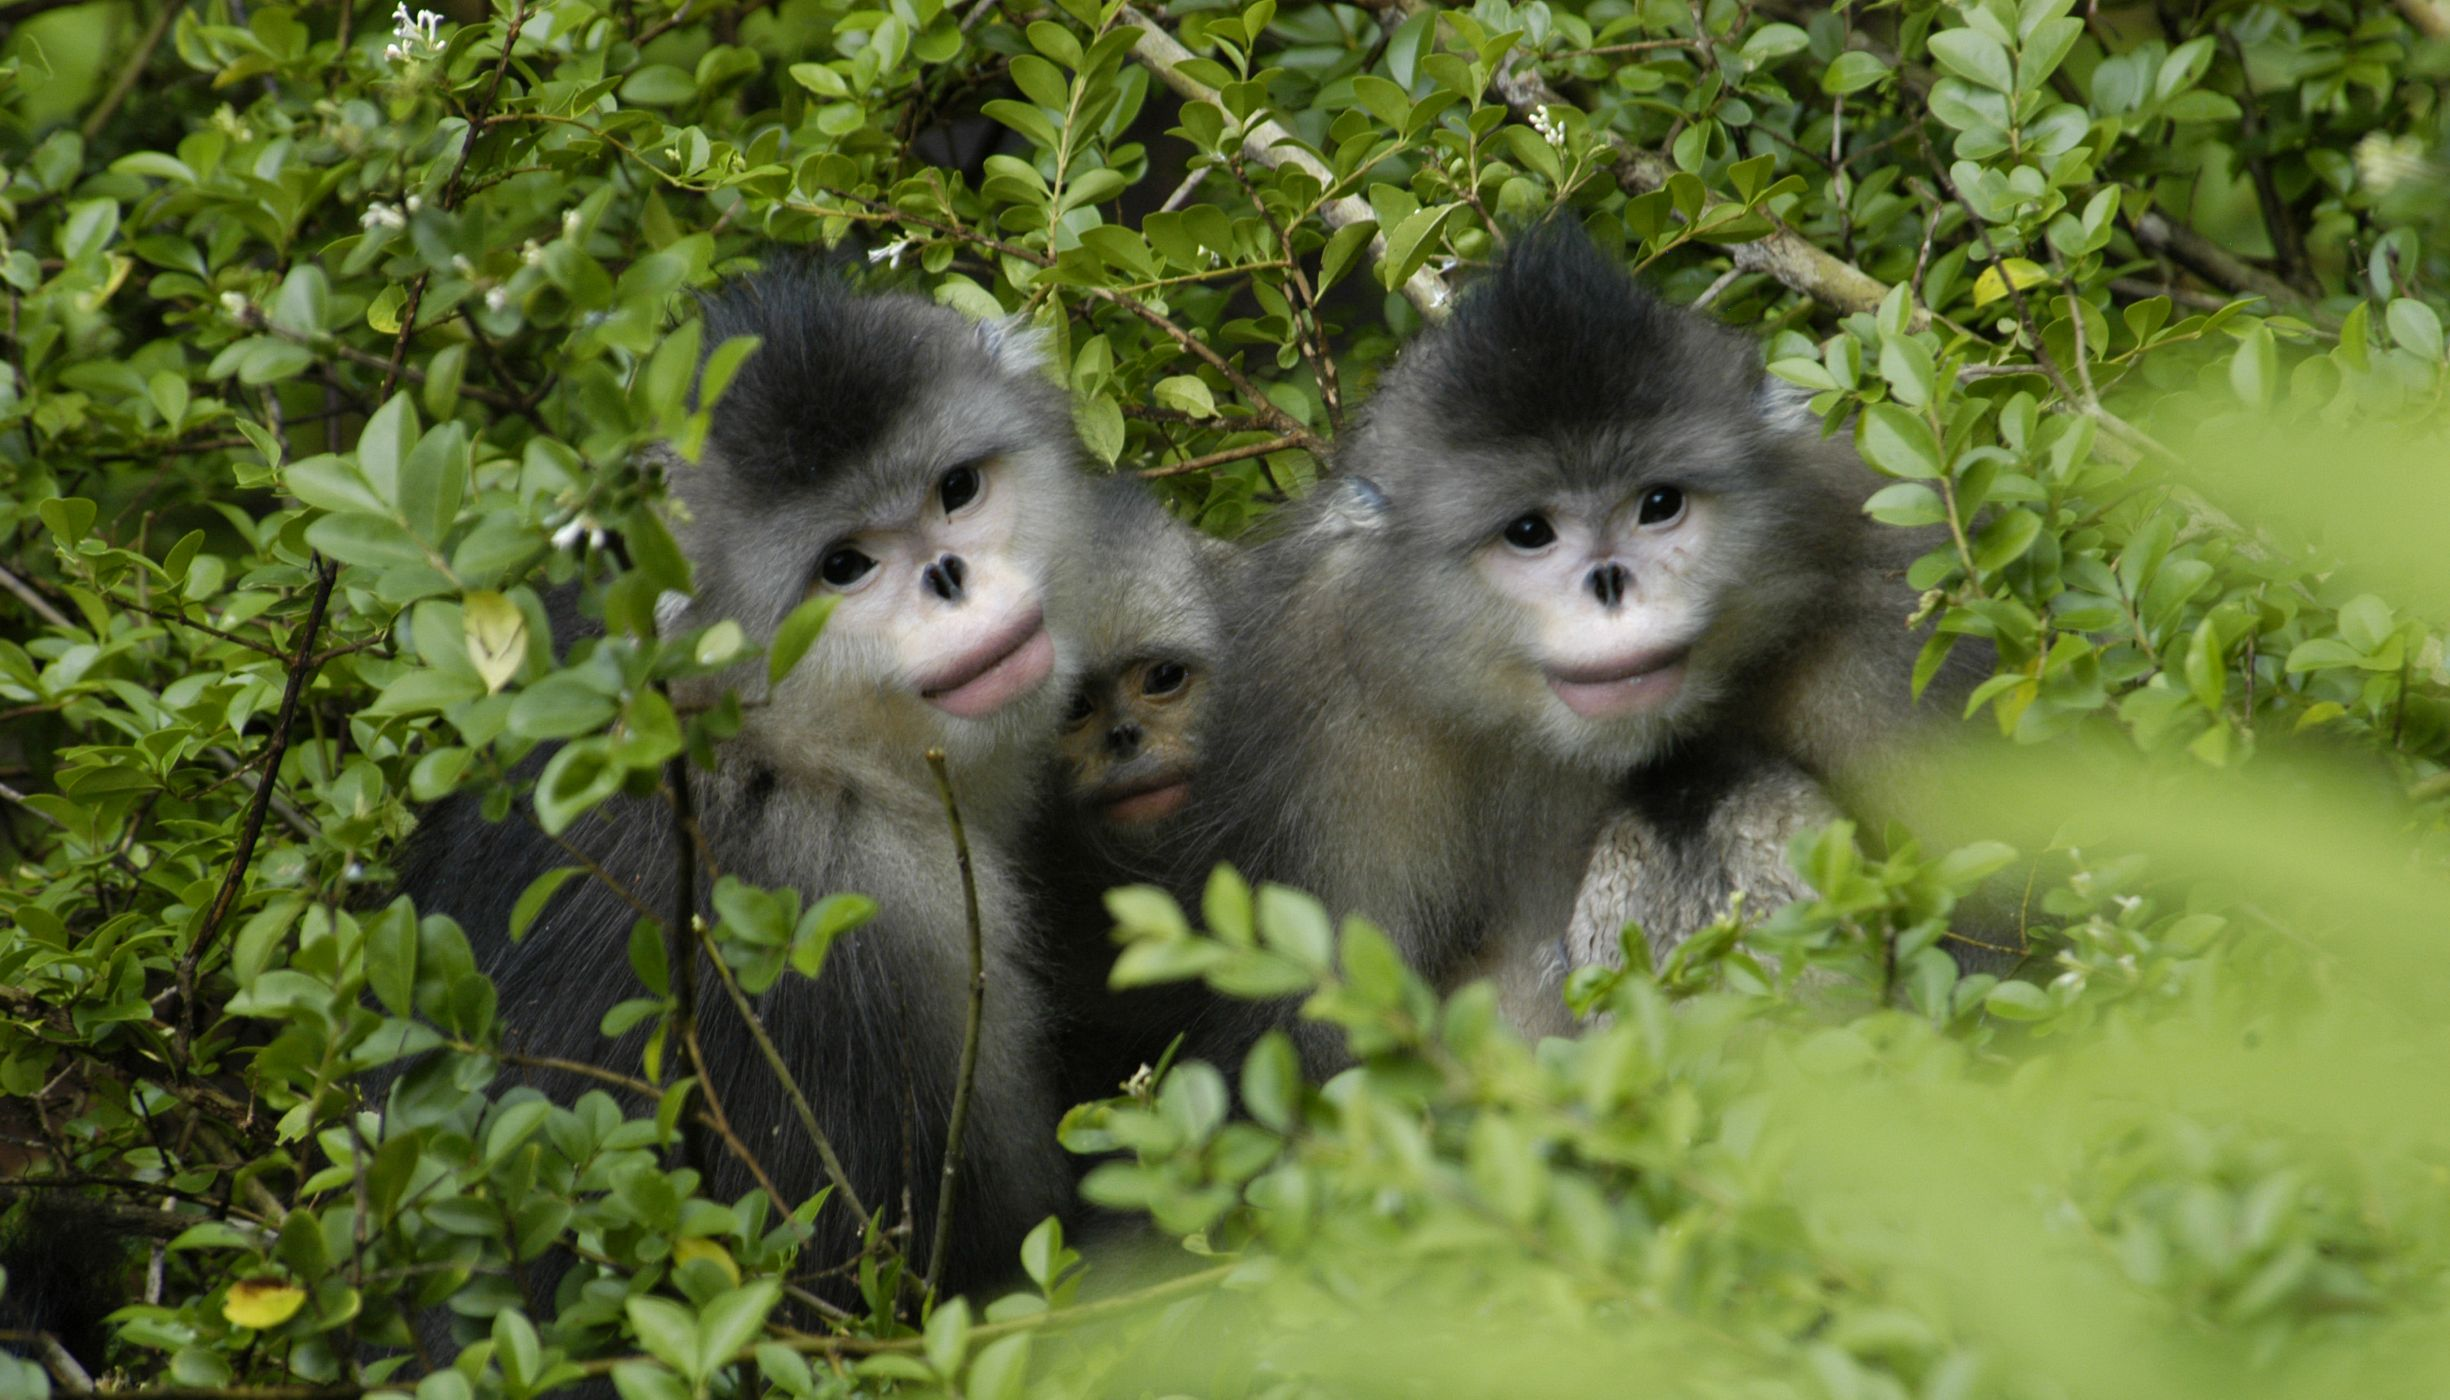 Yunnan Golden Monkeys